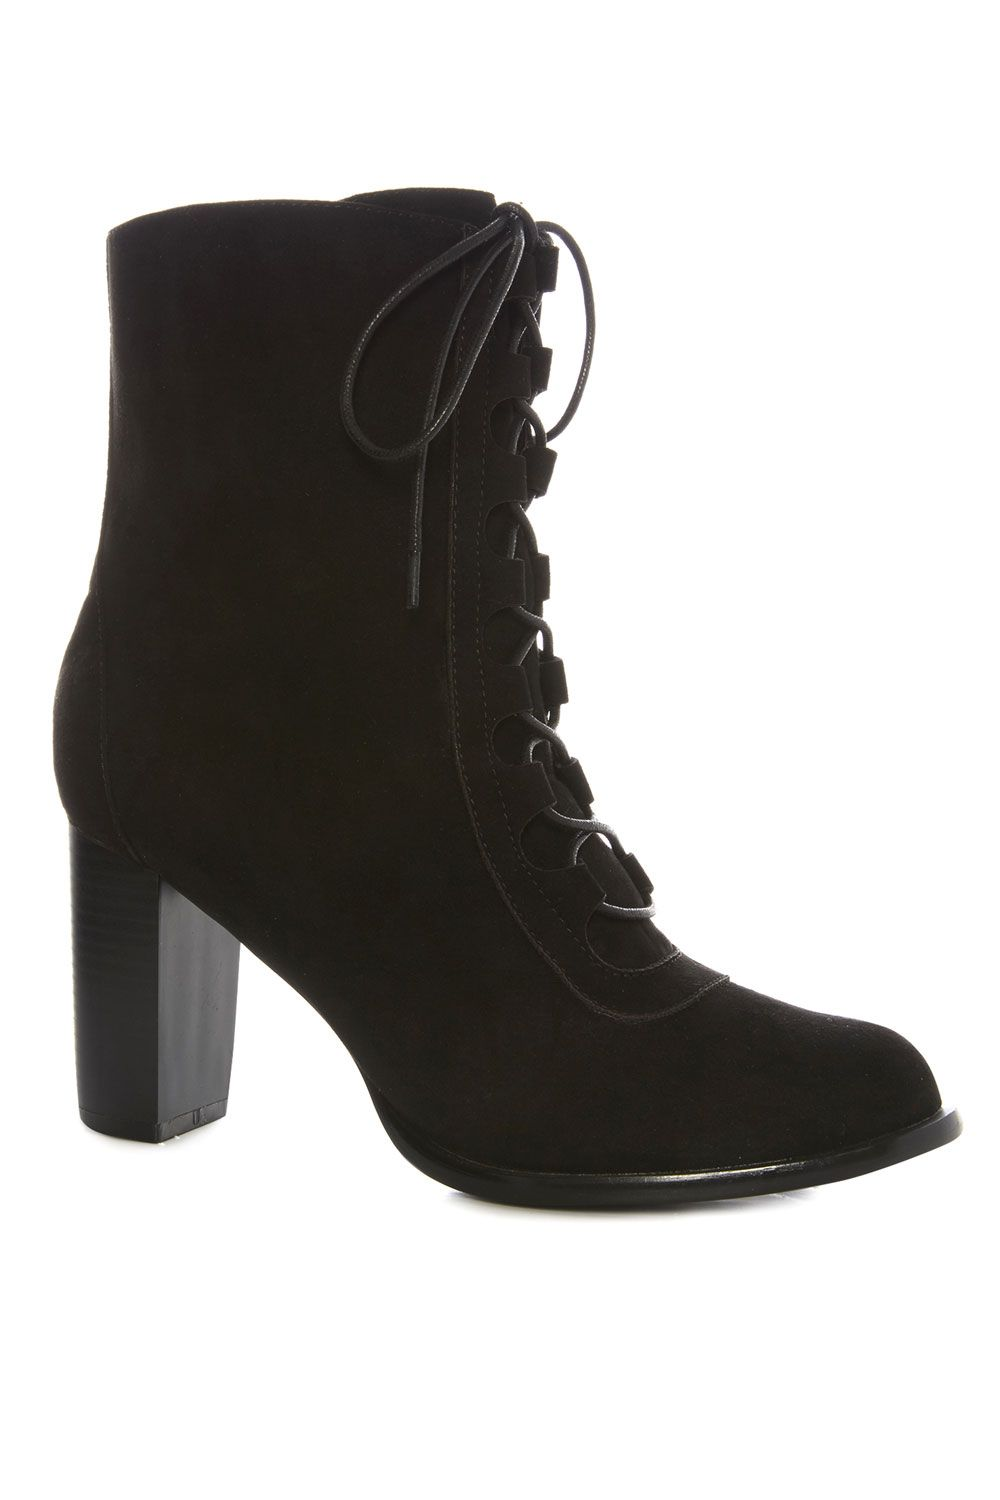 5d653090bb0 The Best Primark Boots To Shop Now | Shoes! | Primark boots, Boots ...